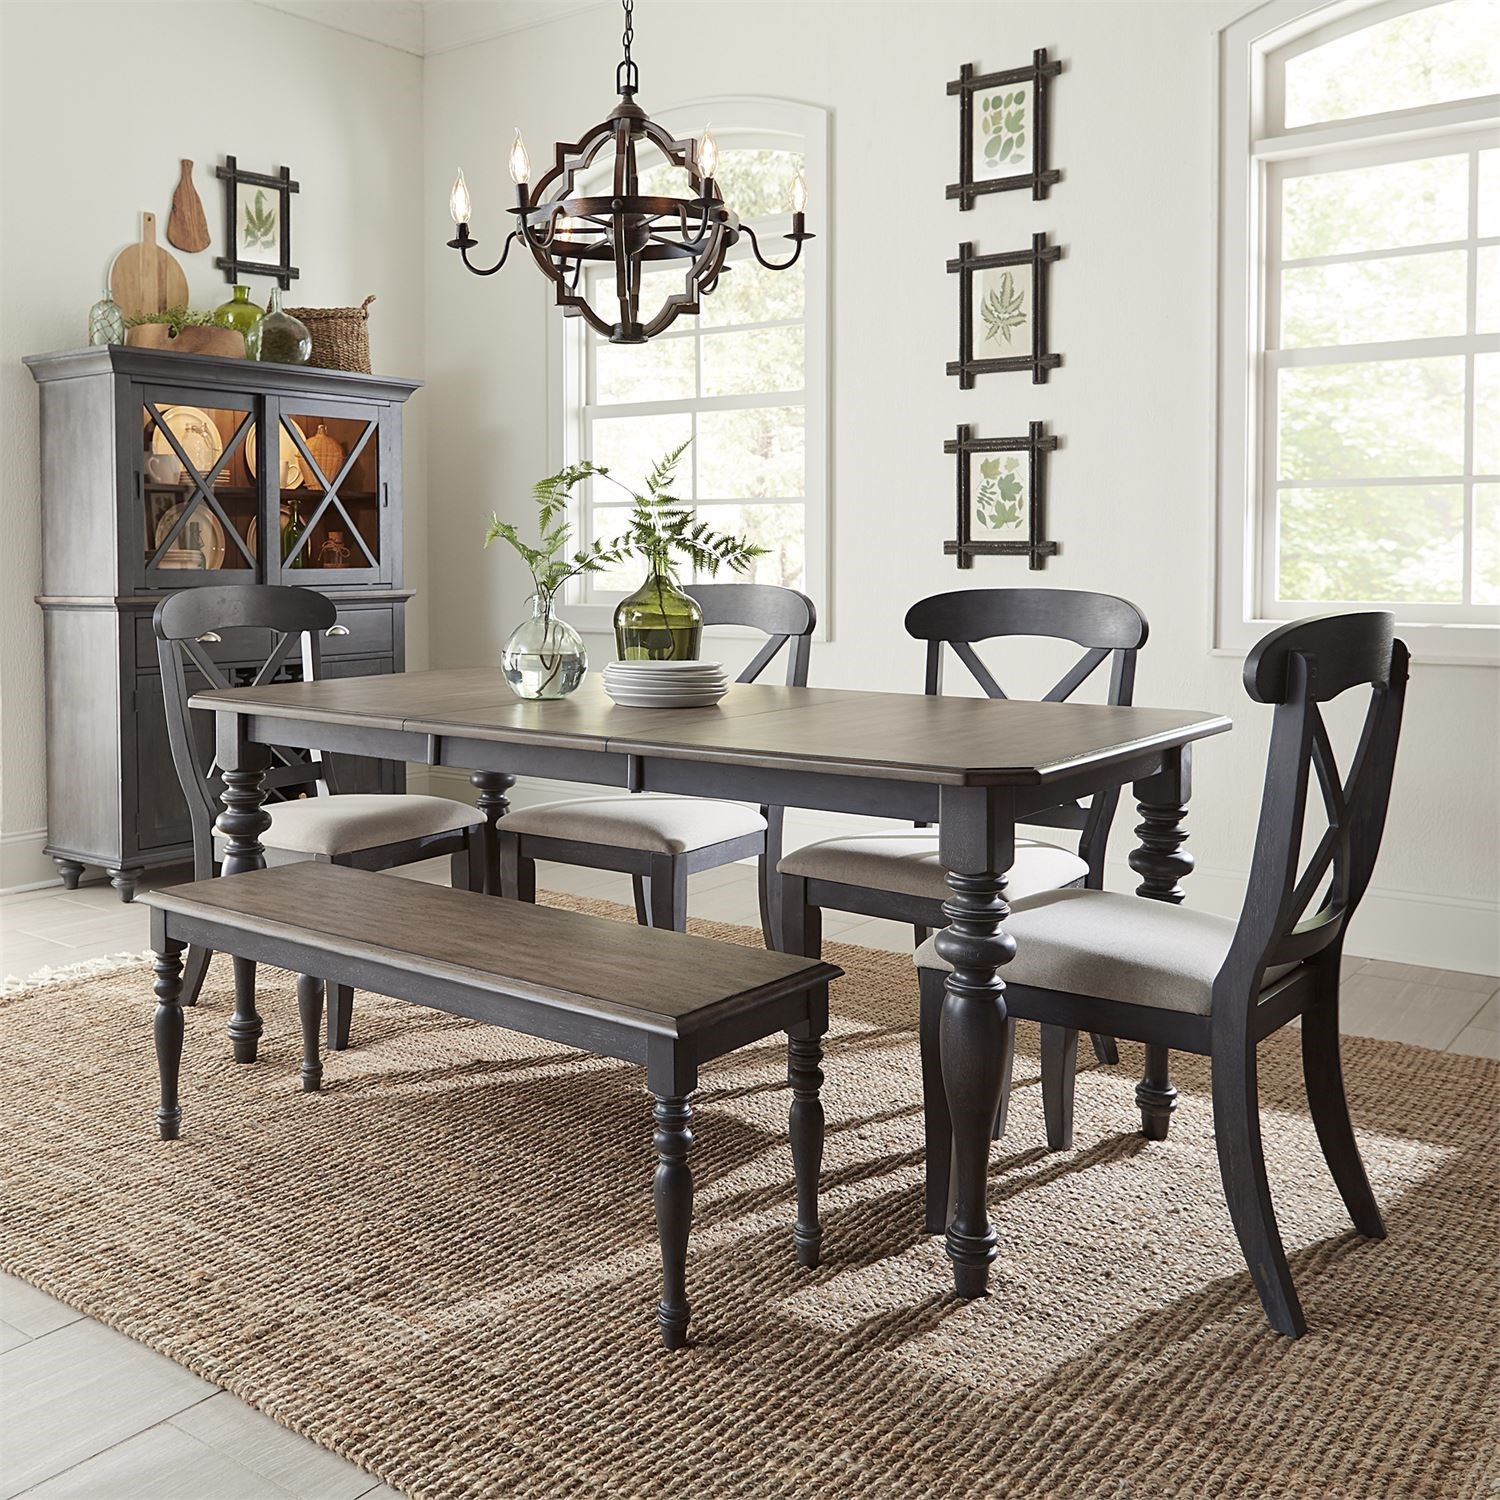 Ocean Isle Dining Room Group by Liberty Furniture at Northeast Factory Direct